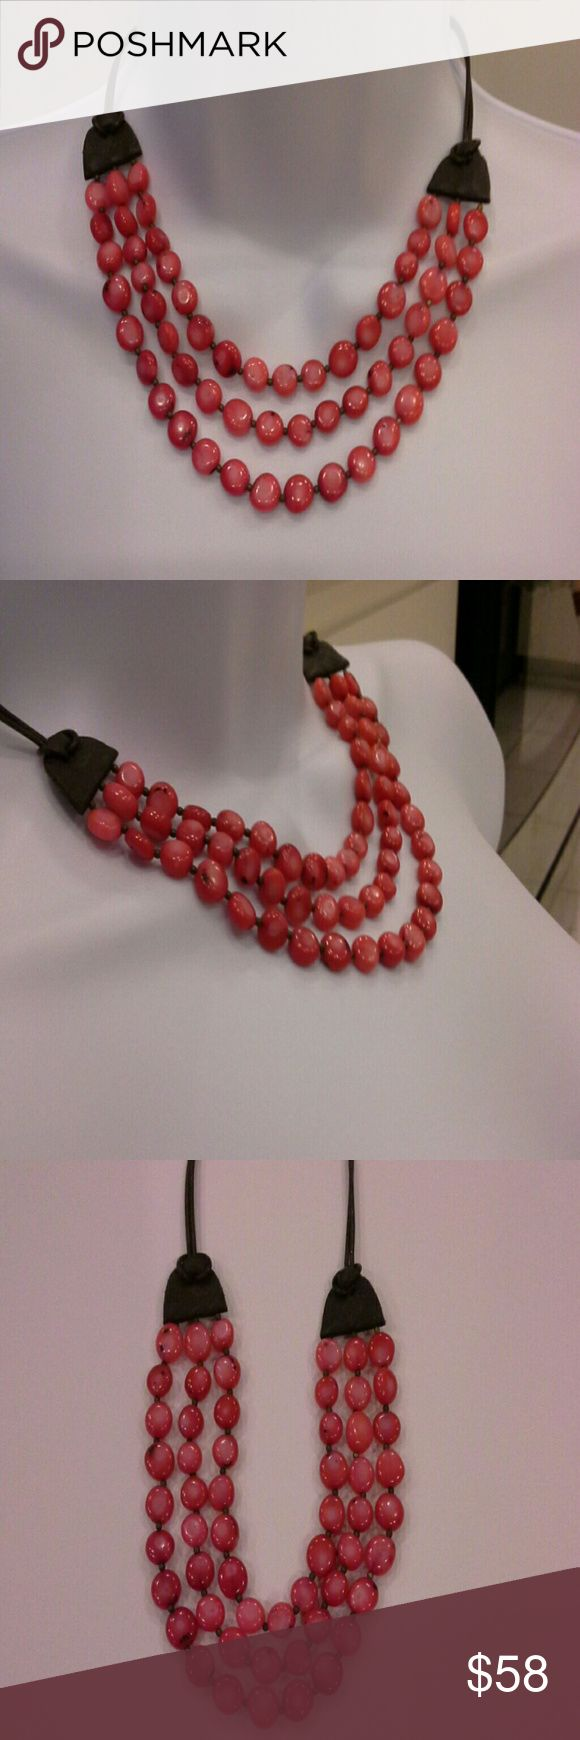 """Sale 💖Gorgeous natural stone necklace/choker Absolutely gorgeous 3 tiered red natural stone necklace choker.  Leather band.  In excellent condition.  18"""" adjustable.  tags: gold silver choker necklace dressy casual formal prom wedding follow real costume party girls women's men kids Jewelry Necklaces"""